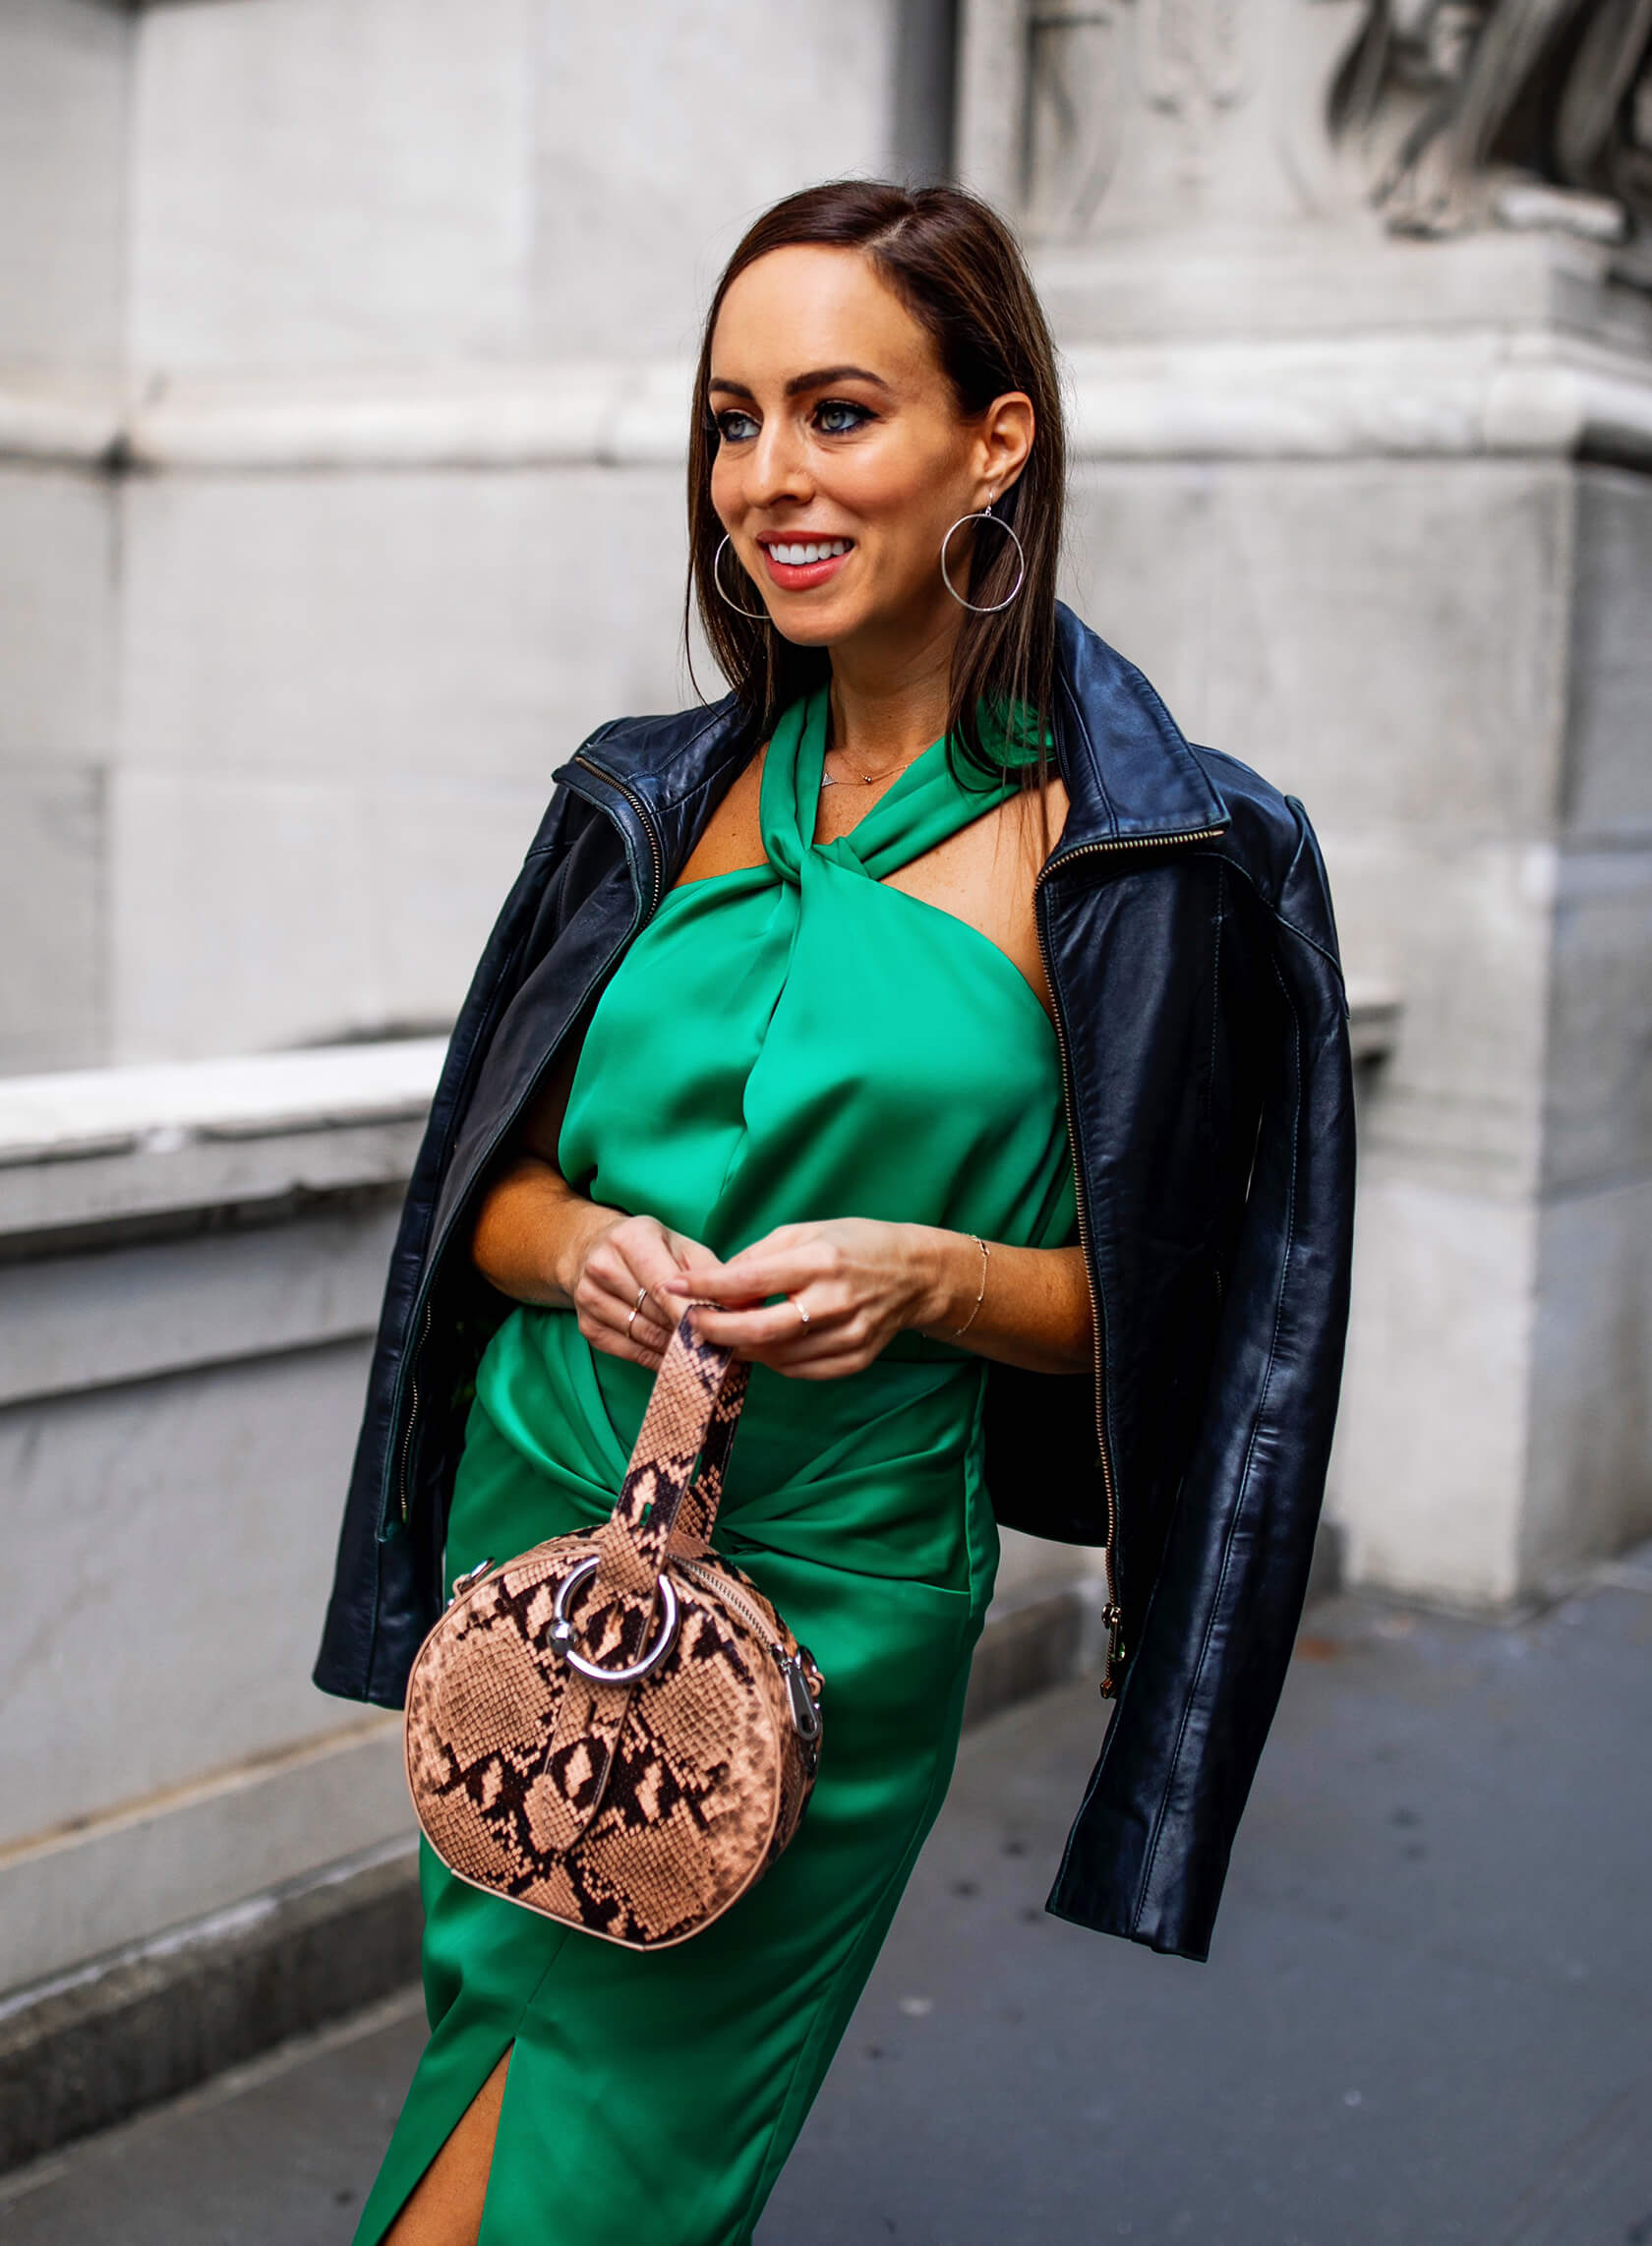 Sydne-Style-shows-new-york-fashion-week-street-style-trends-in-leather-jacket-and-snakeskin